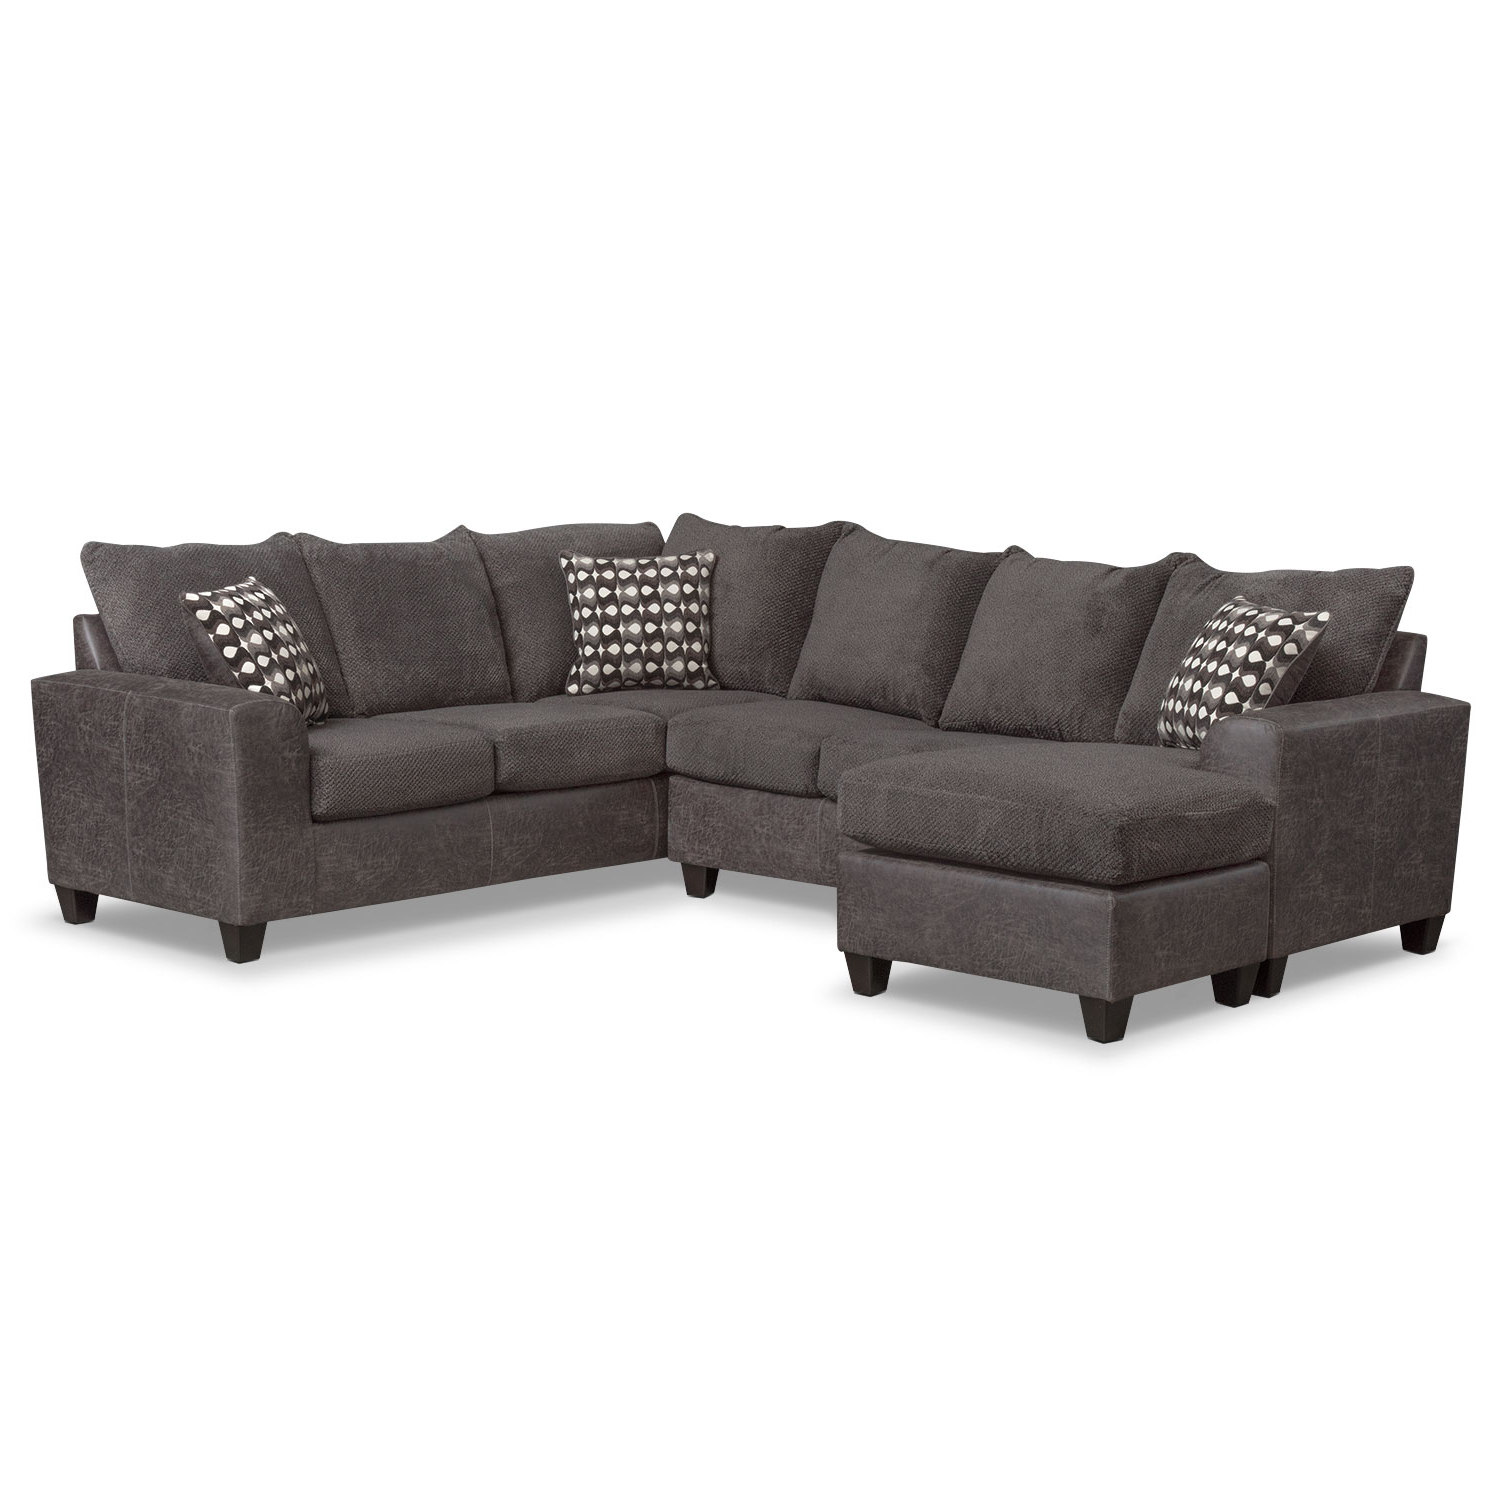 Brando 3 Piece Sectional With Chaise And Swivel Chair Set (View 16 of 20)